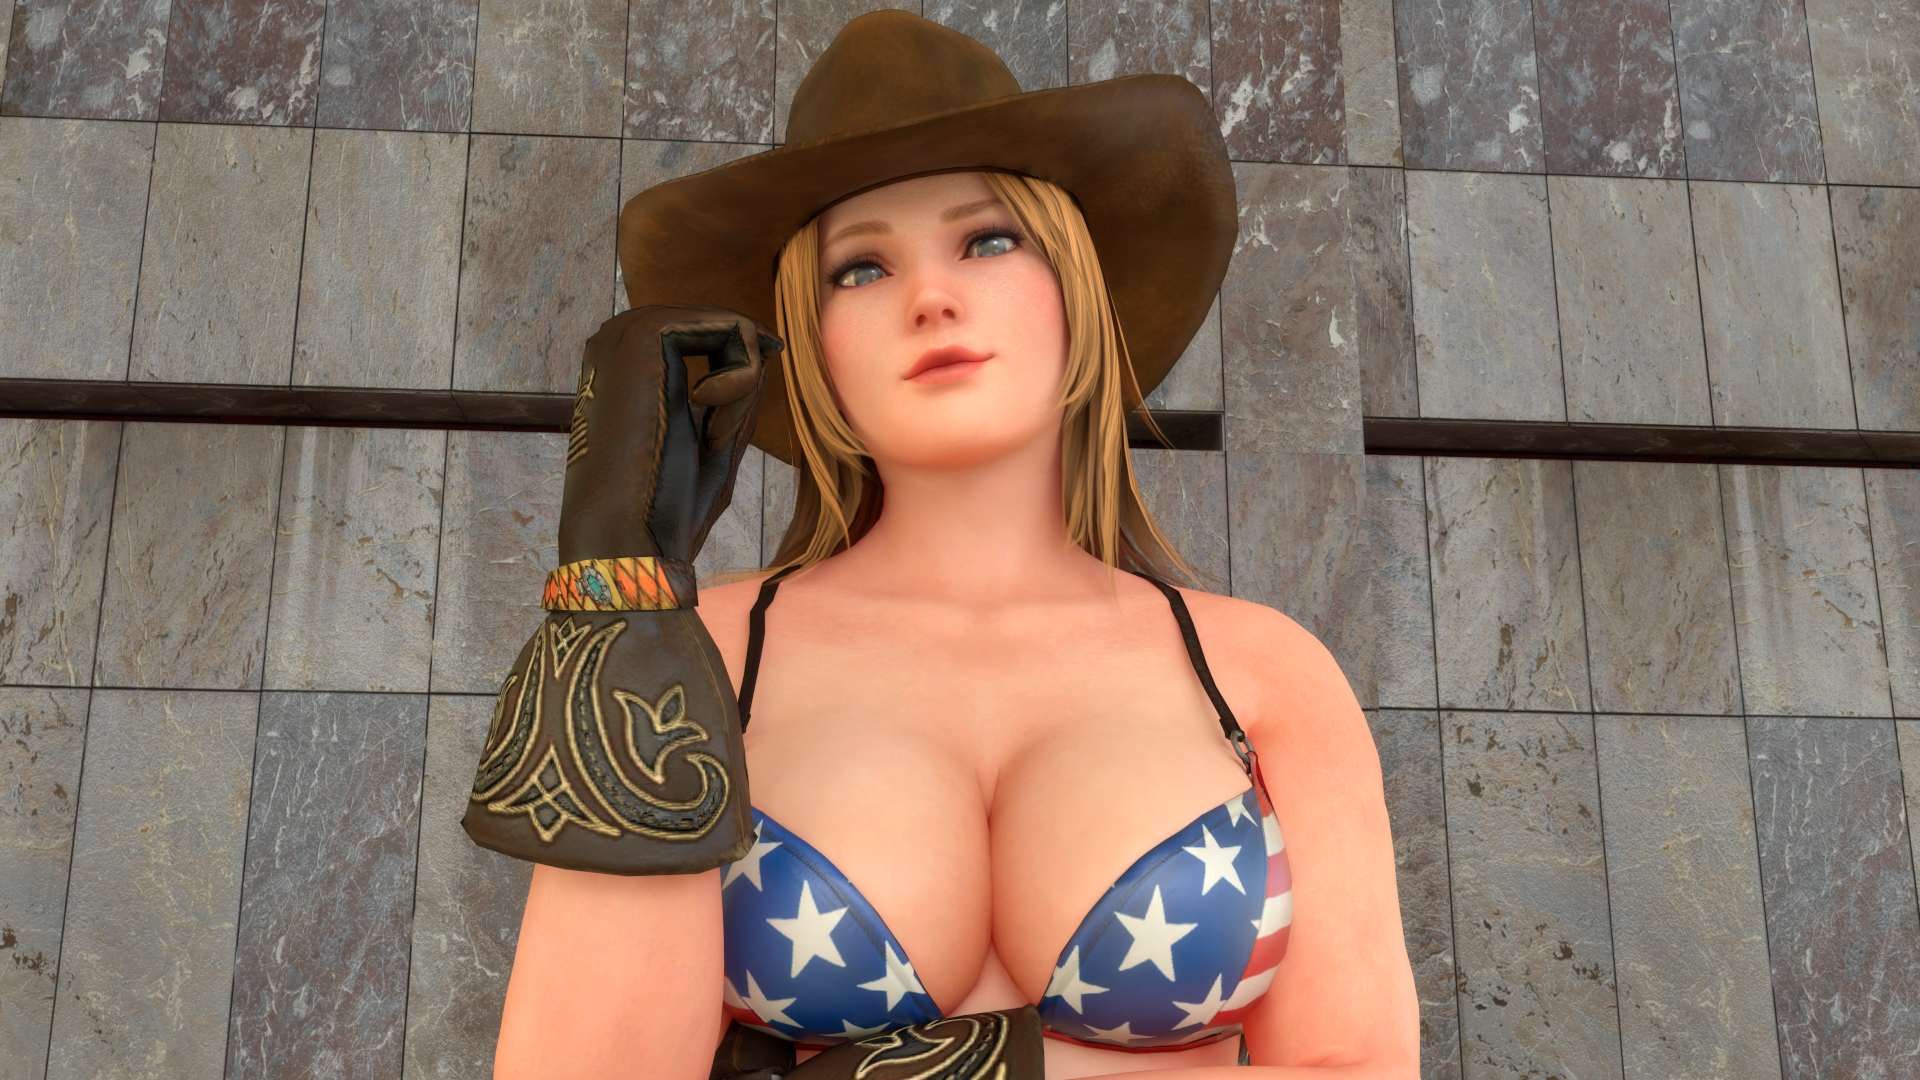 tina hot cowgirl